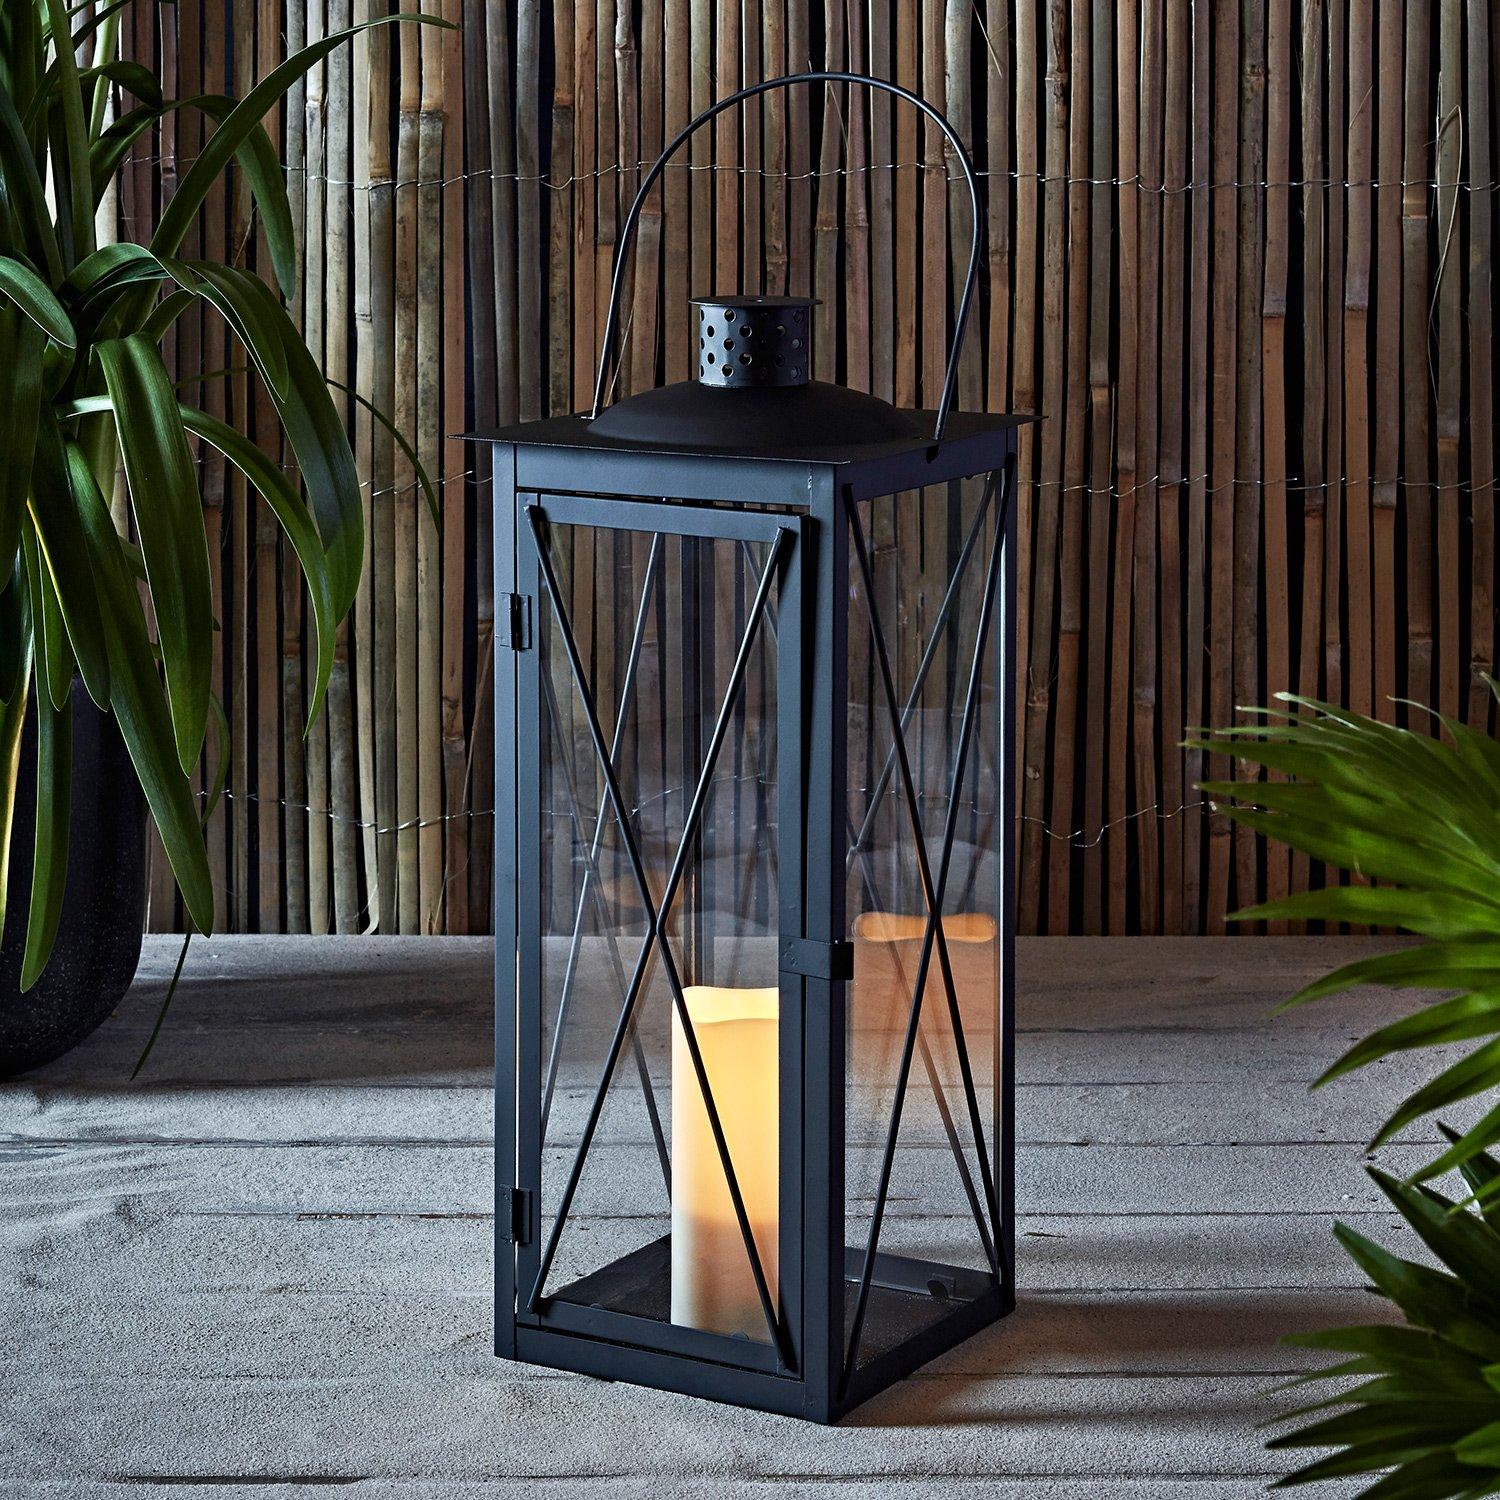 Tall Black Metal Battery Operated LED Flameless Candle Lantern for Indoor Outdoor Use